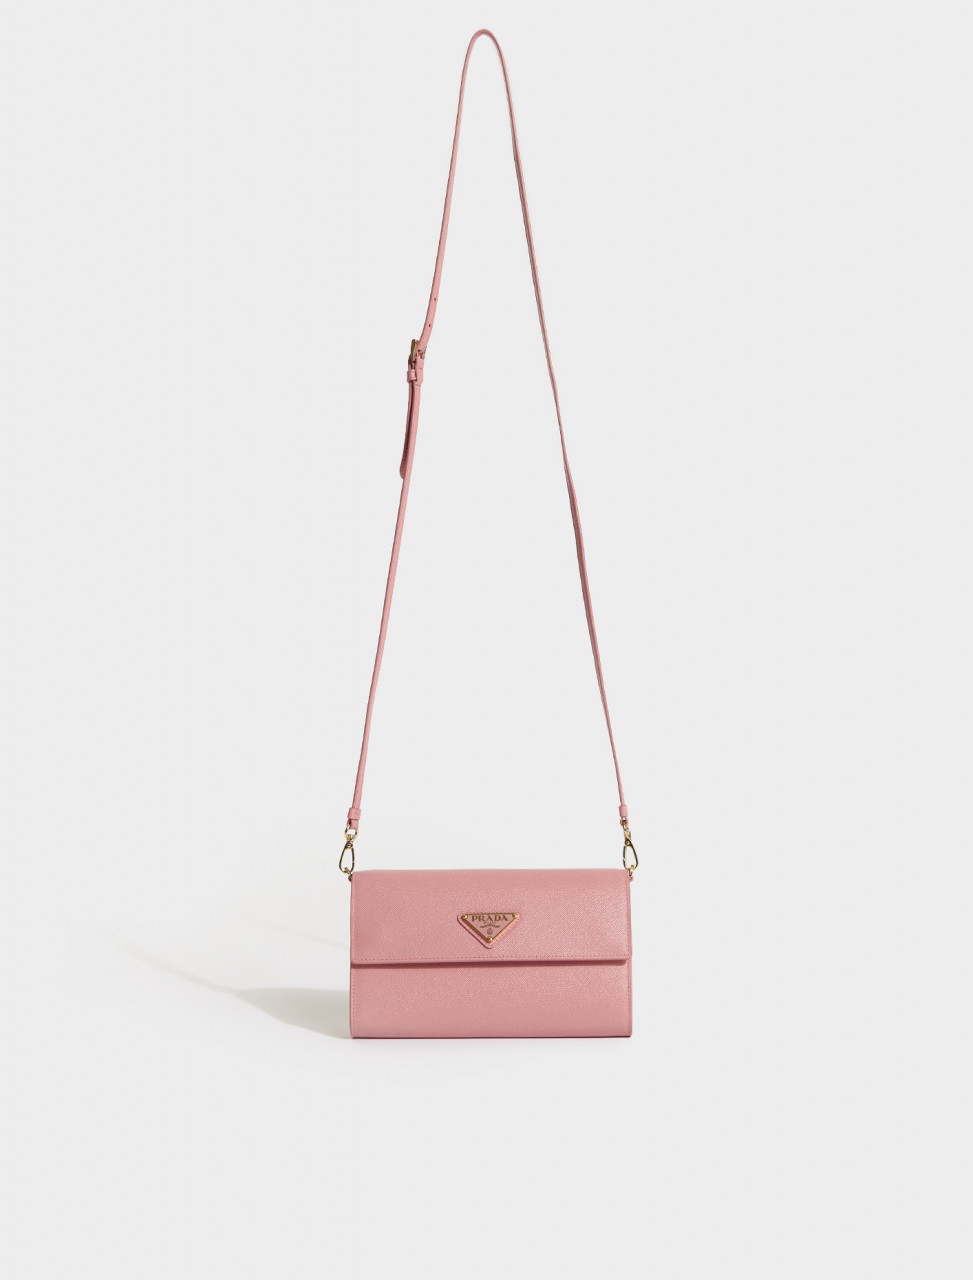 1MA022-F0442 PRADA Saffiano Leather Wallet with Shoulder Strap in Petal